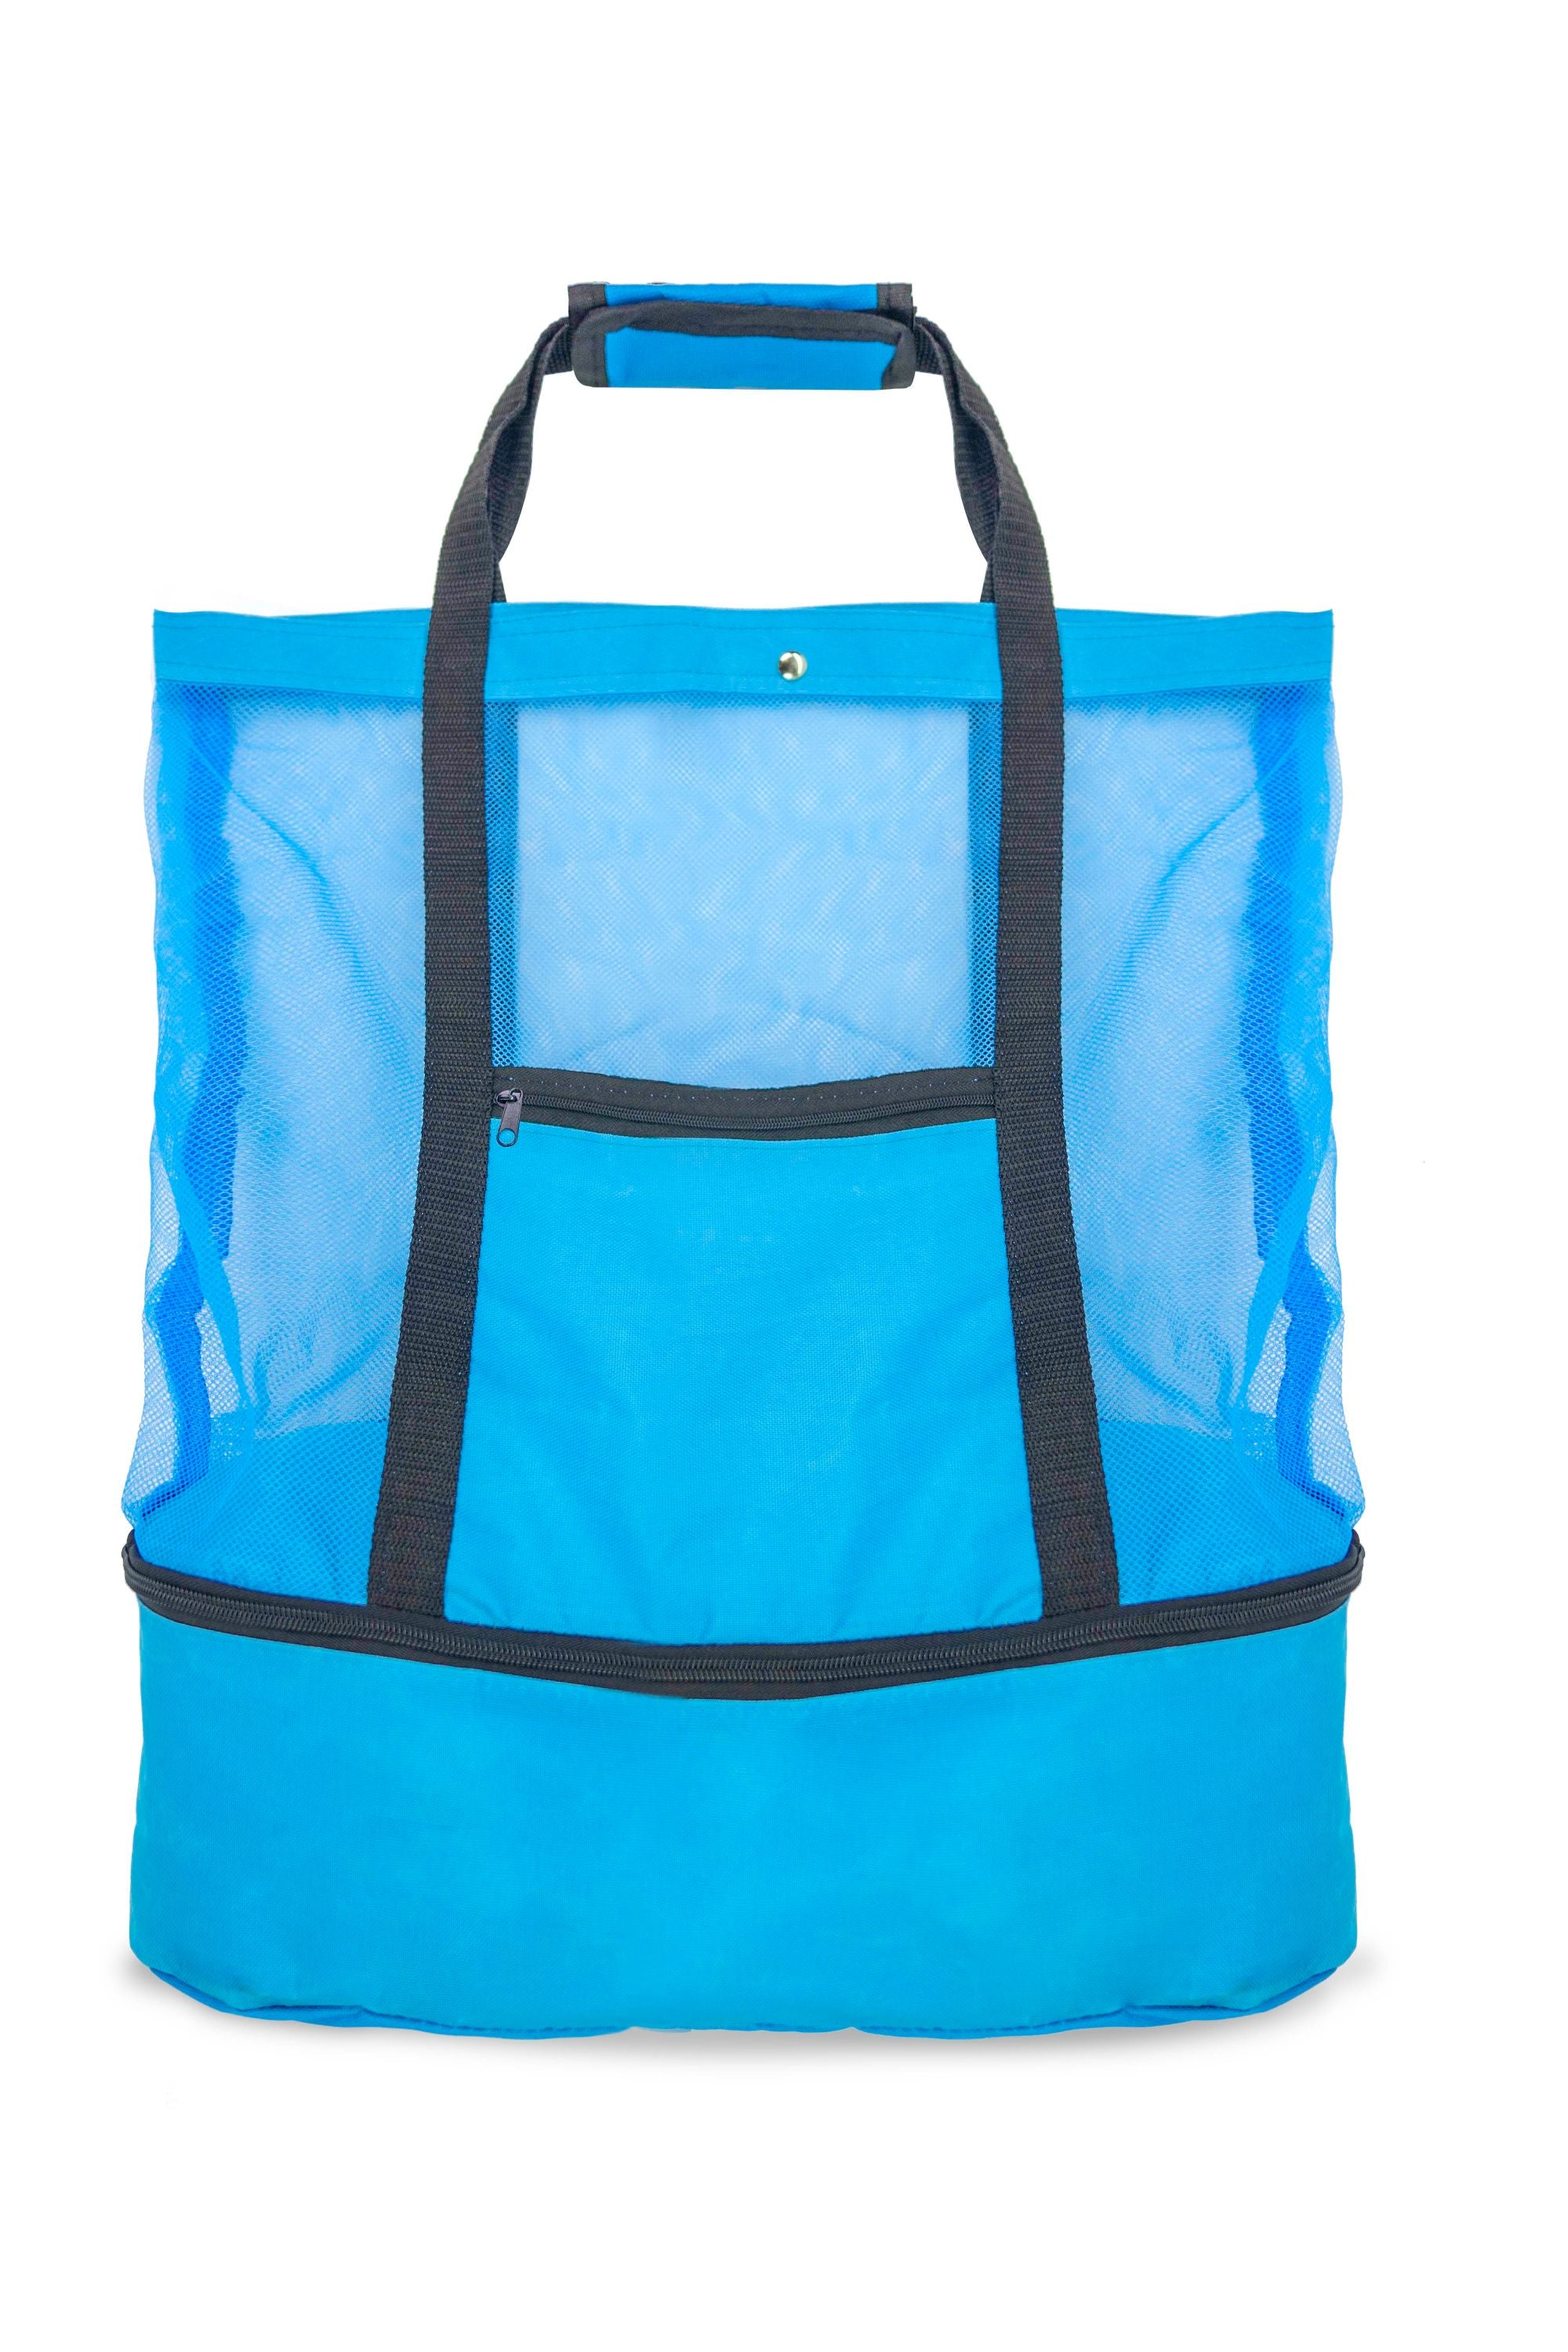 shopify-Insulated Cooler Picnic Beach Tote Bag-6